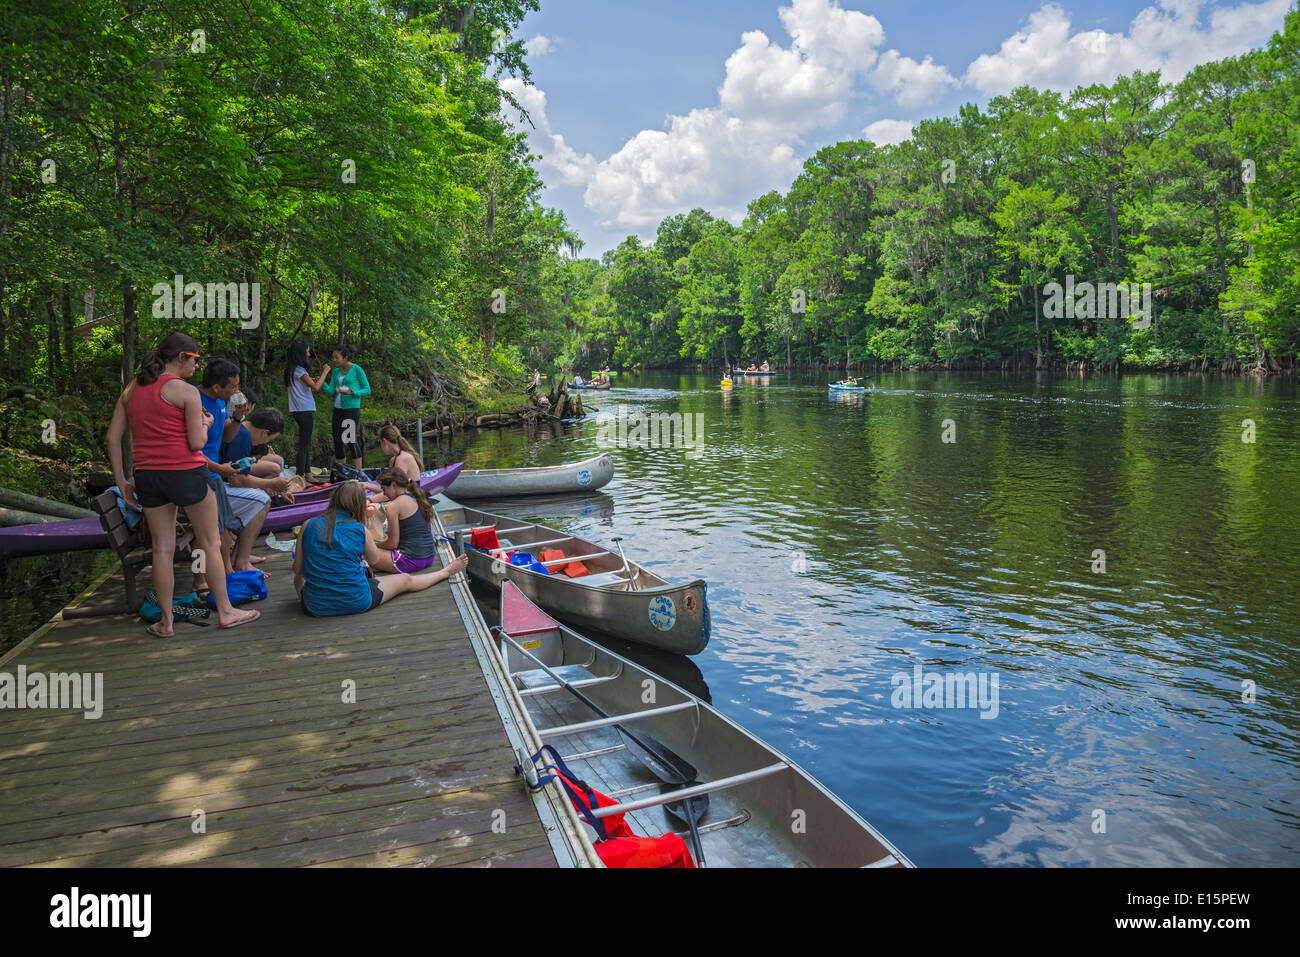 Young canoers stop for lunch along the Santa Fe River at a floating dock near Poe Springs Park in High Springs, Florida. - Stock Image